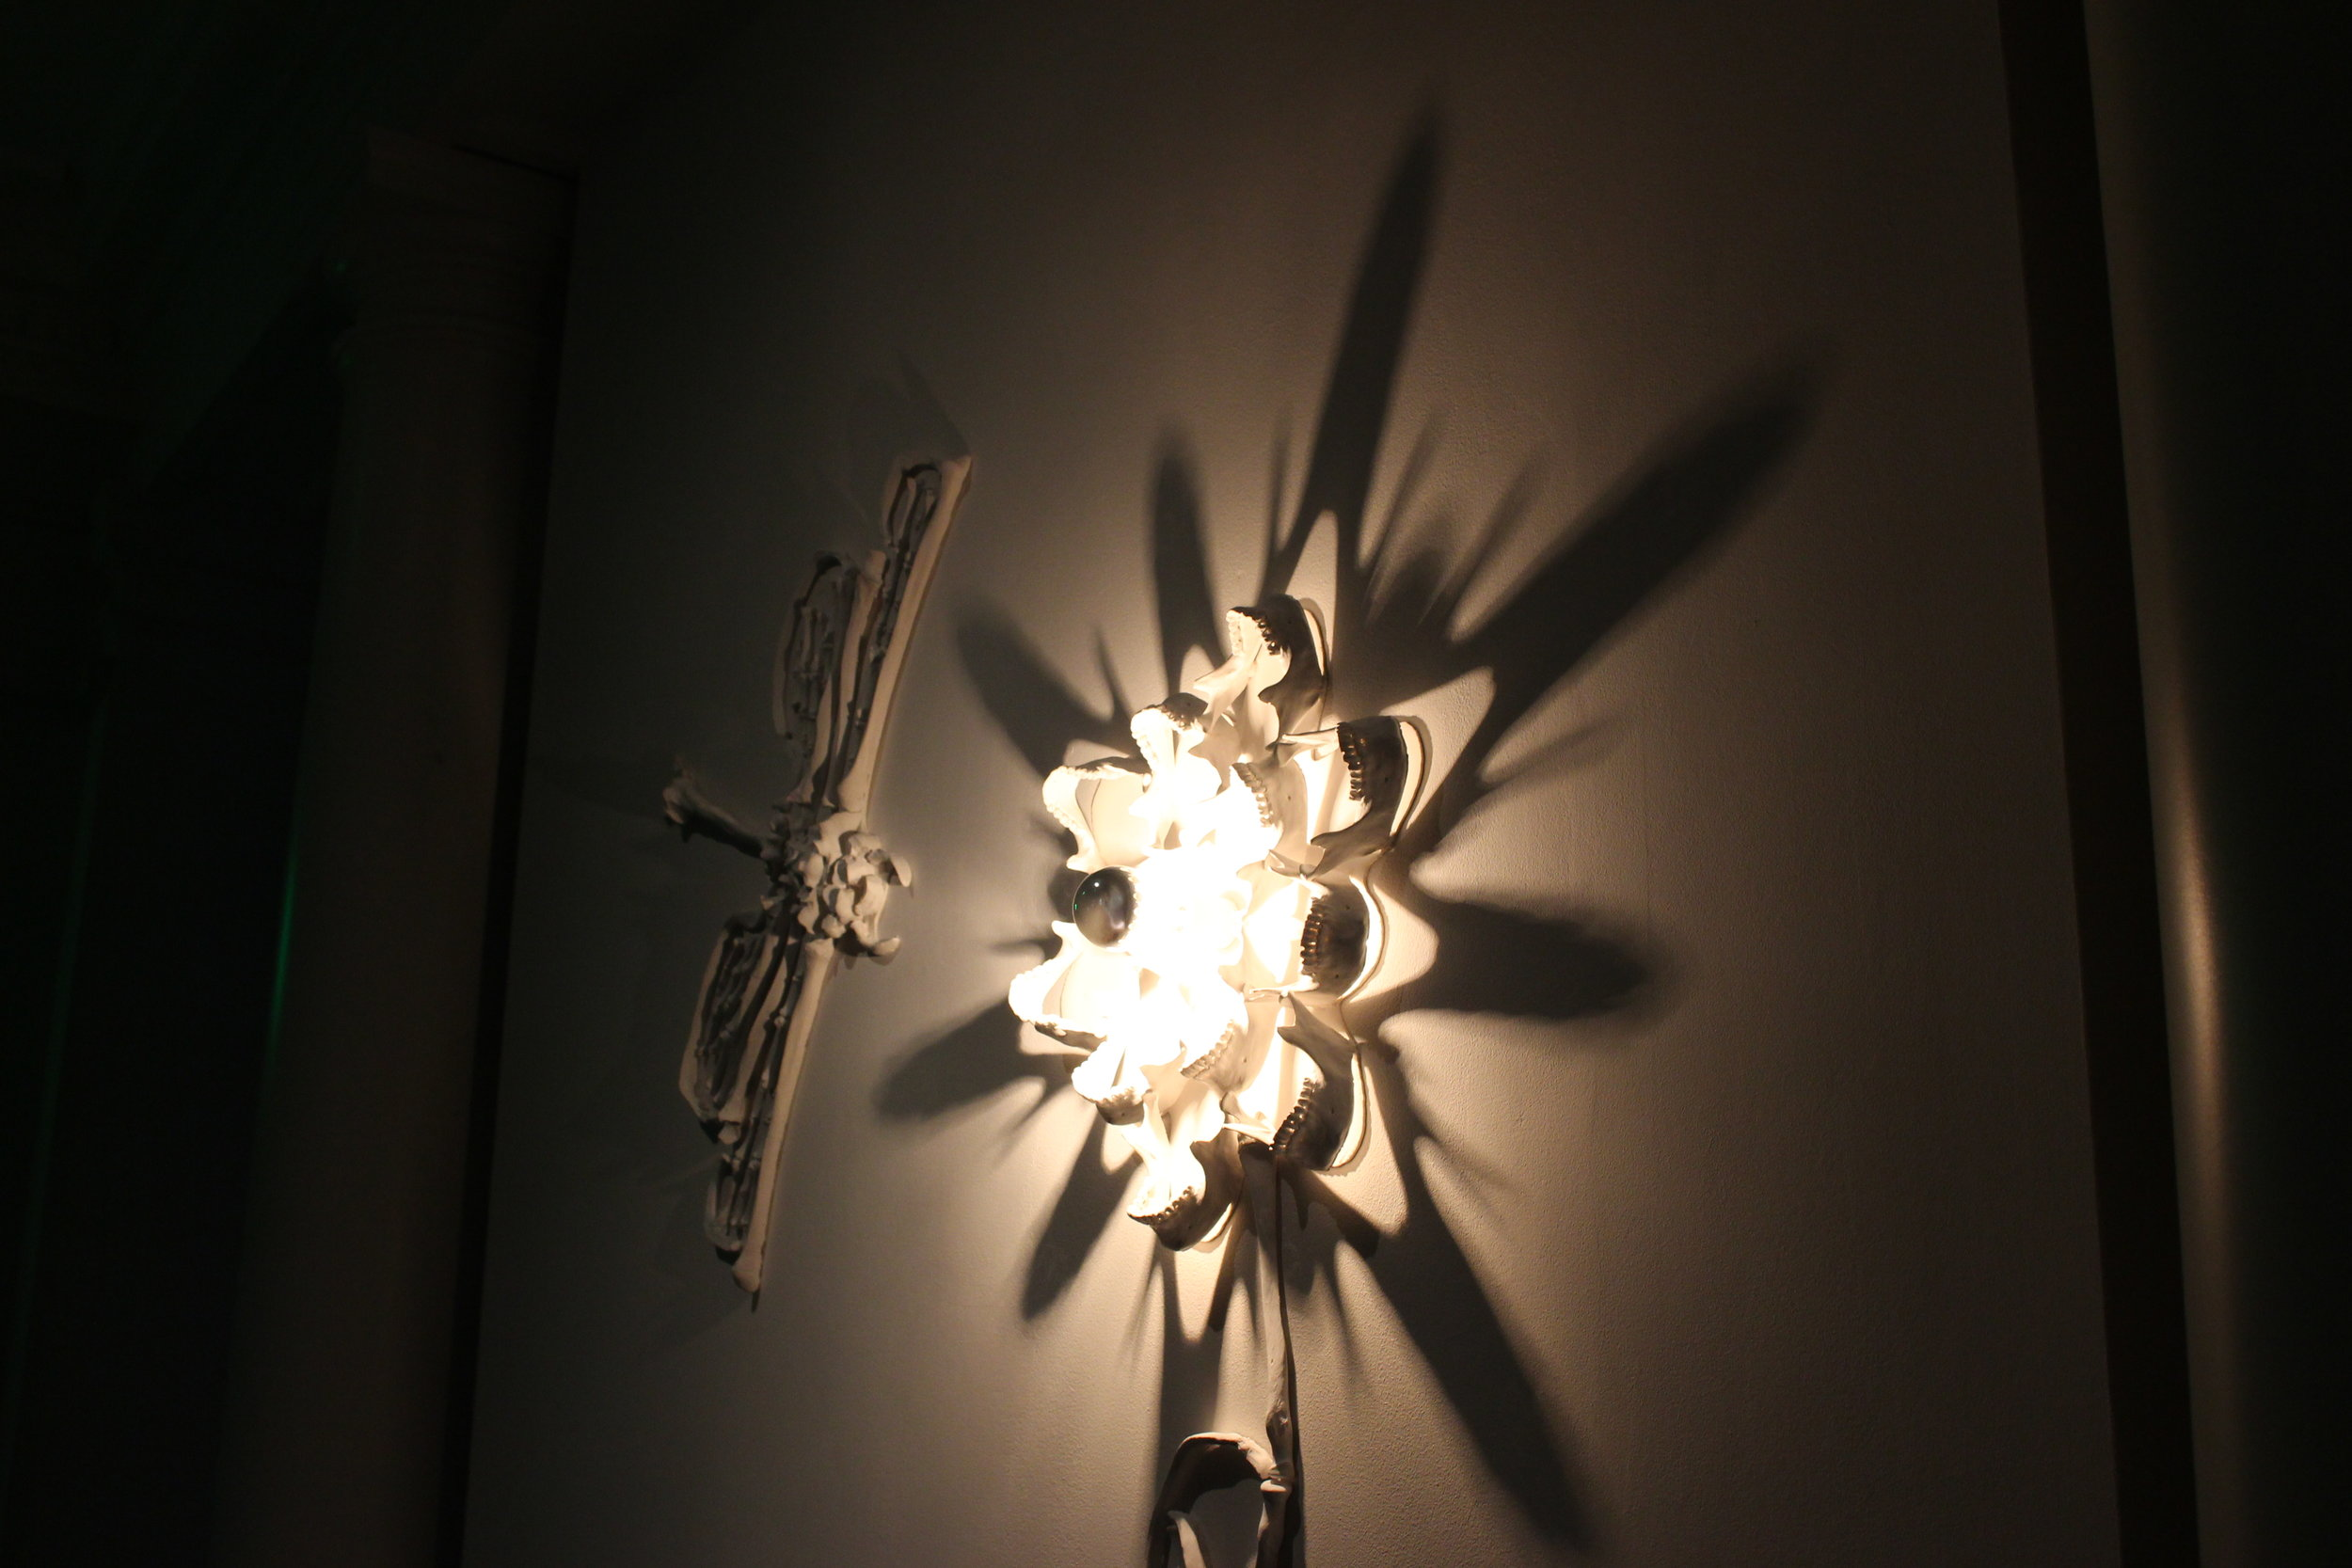 A light display that uses light and shadow to present itself